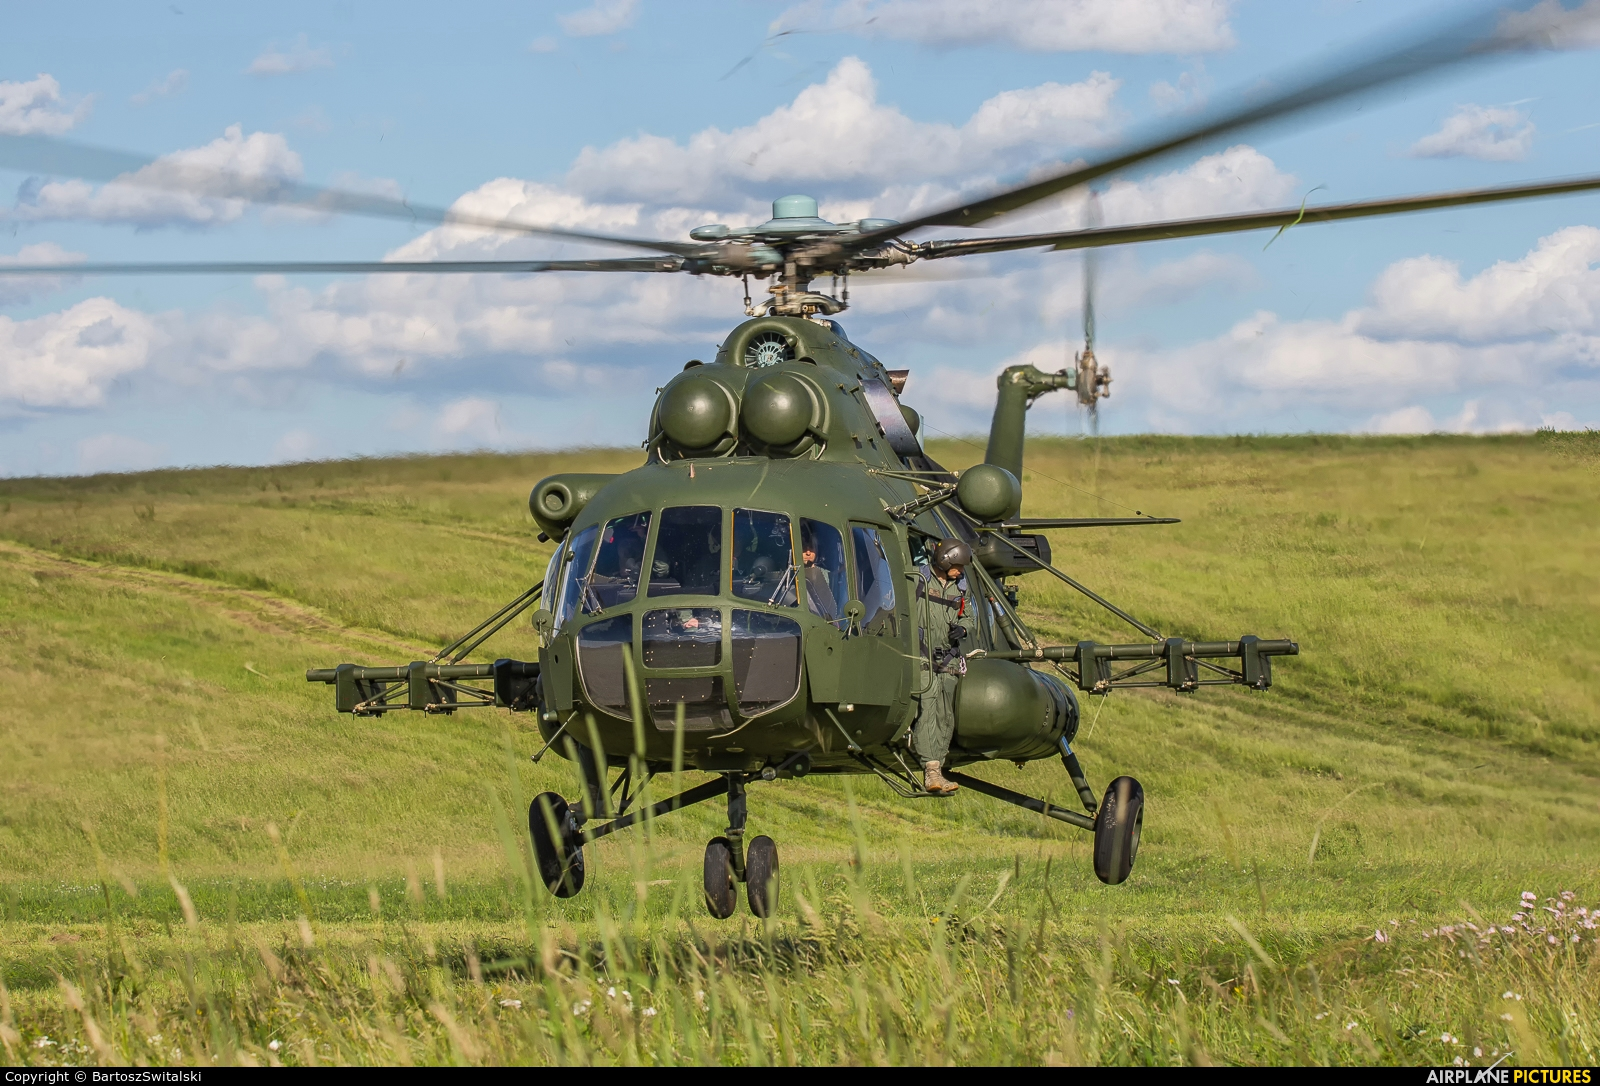 Poland- Air Force: Special Forces 6110 aircraft at Undisclosed location